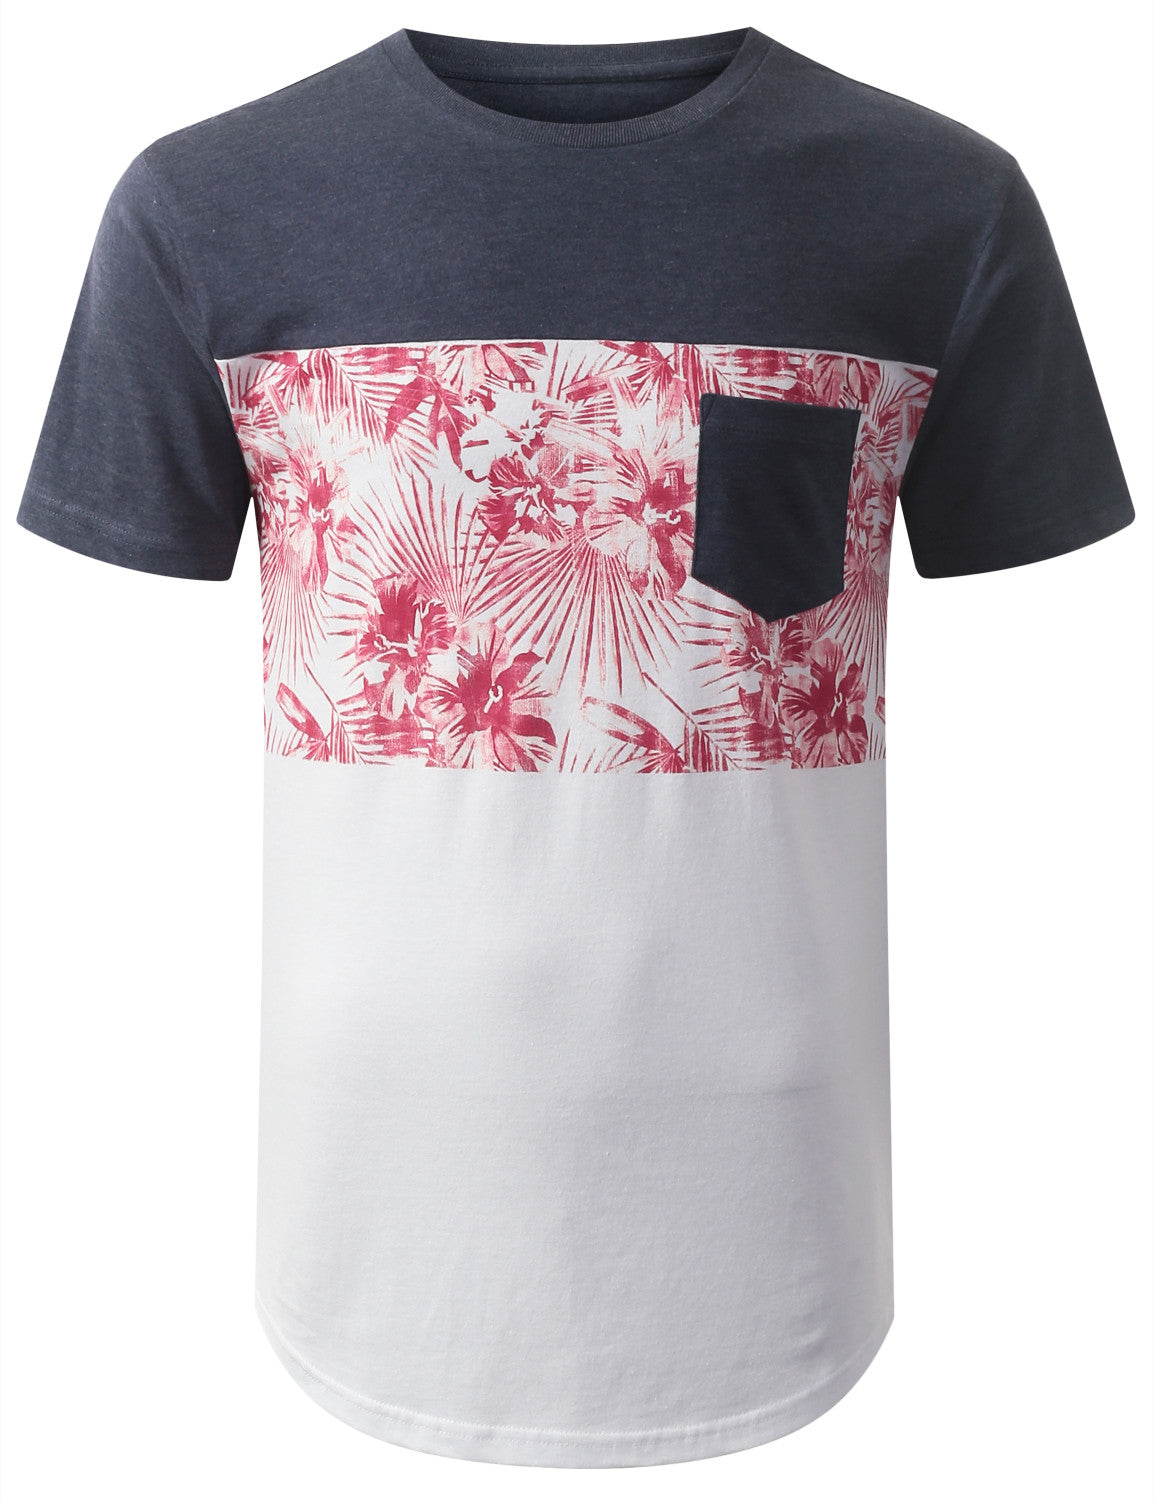 NAVY FLORAL POCKET CREWNECK TSHIRTS